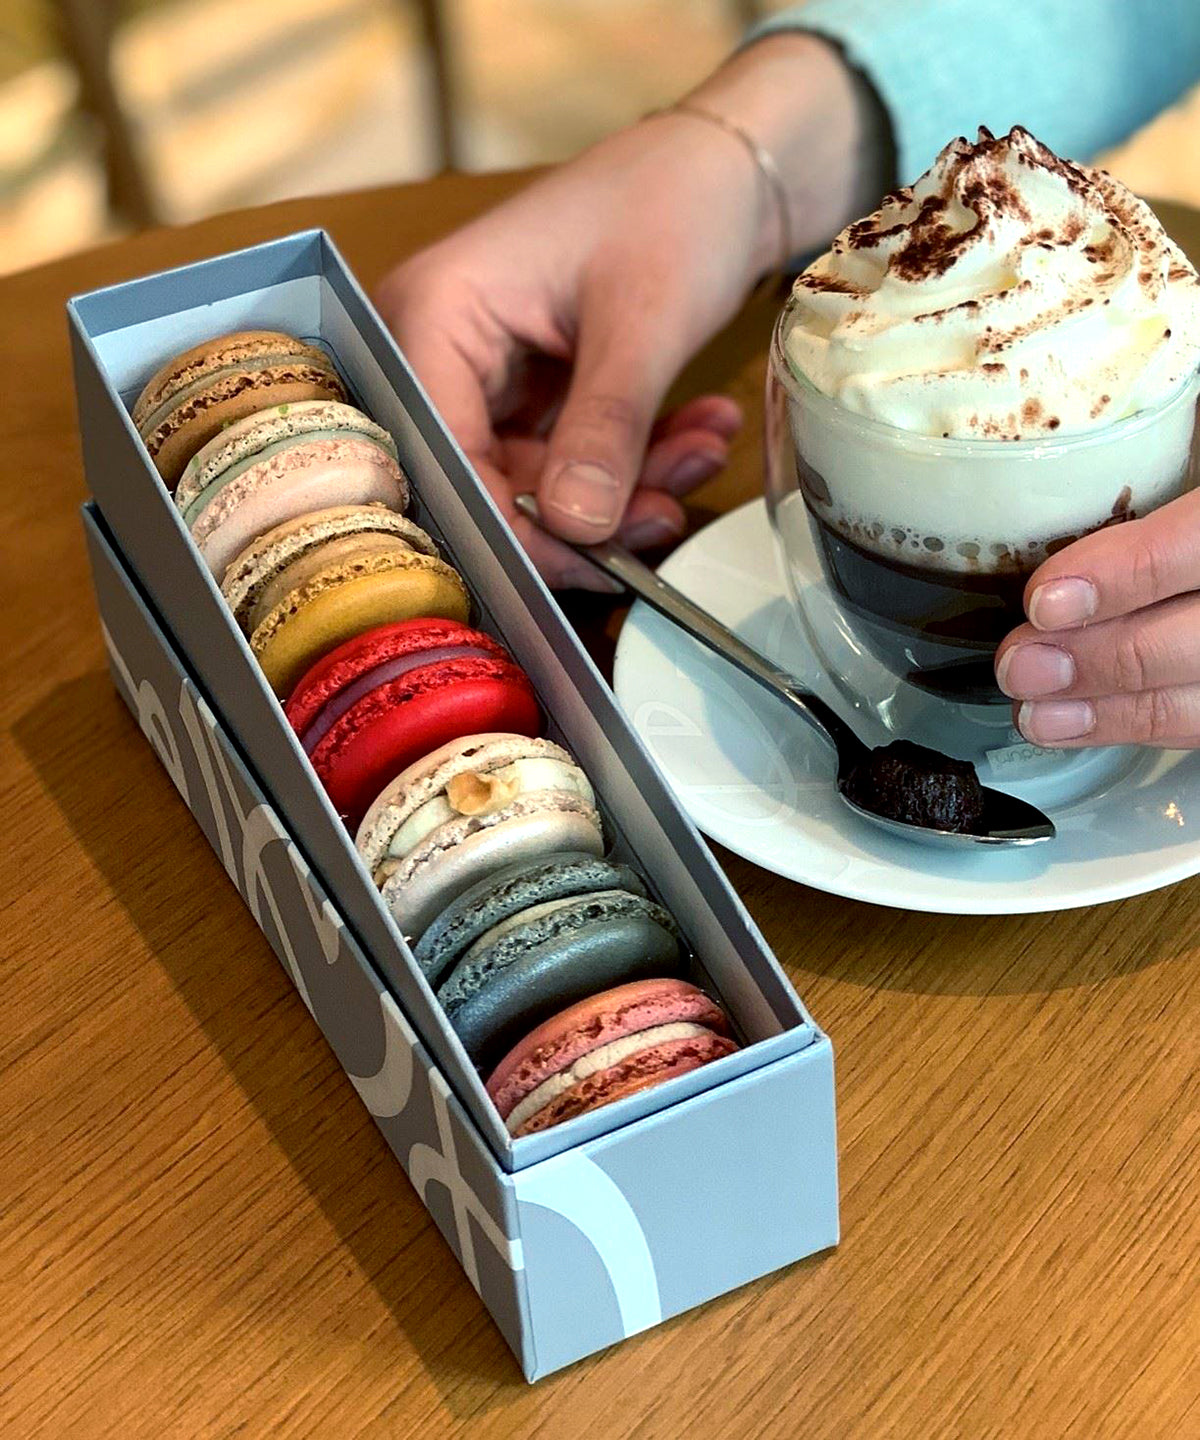 Pierre Herme in Paris France macaroons